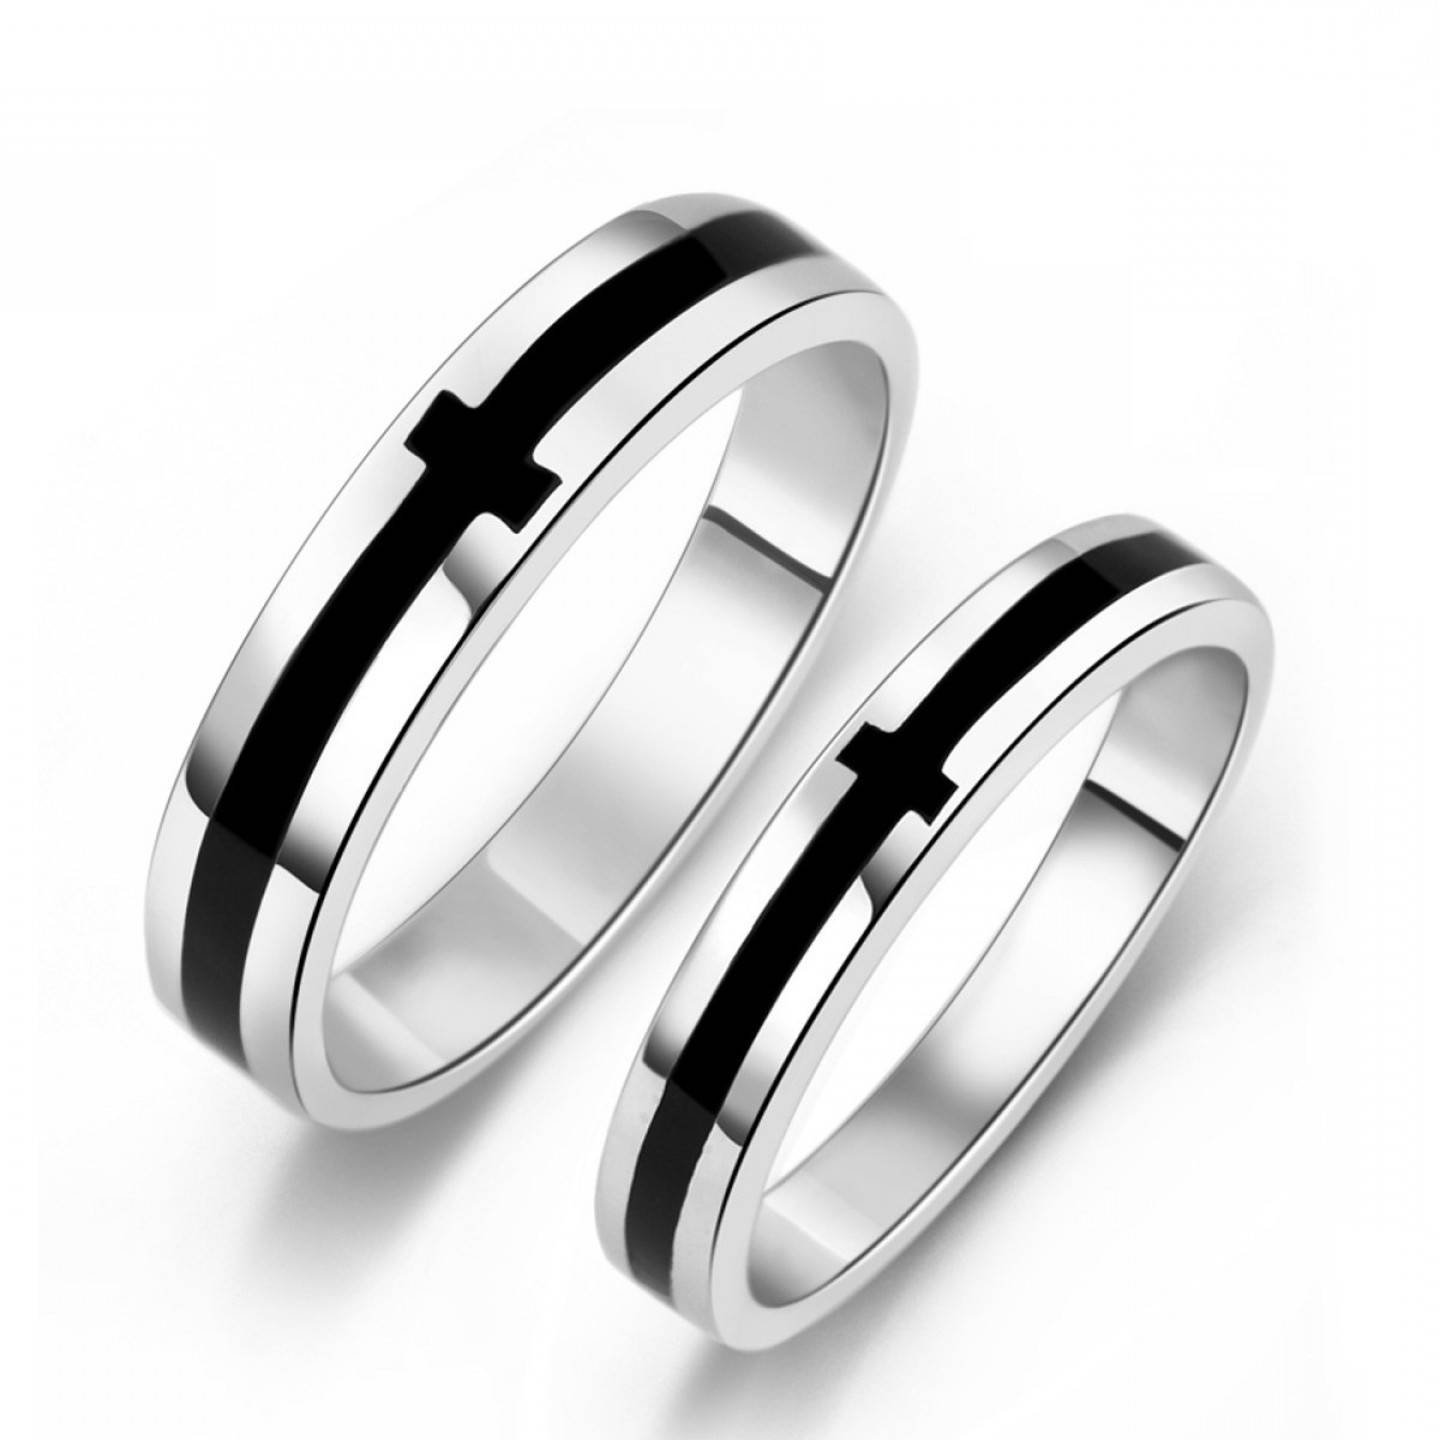 P Black Onyx S Sterling Silver Mens Ladies Couple Promise Ring Regarding Black Onyx Wedding Bands (View 10 of 15)